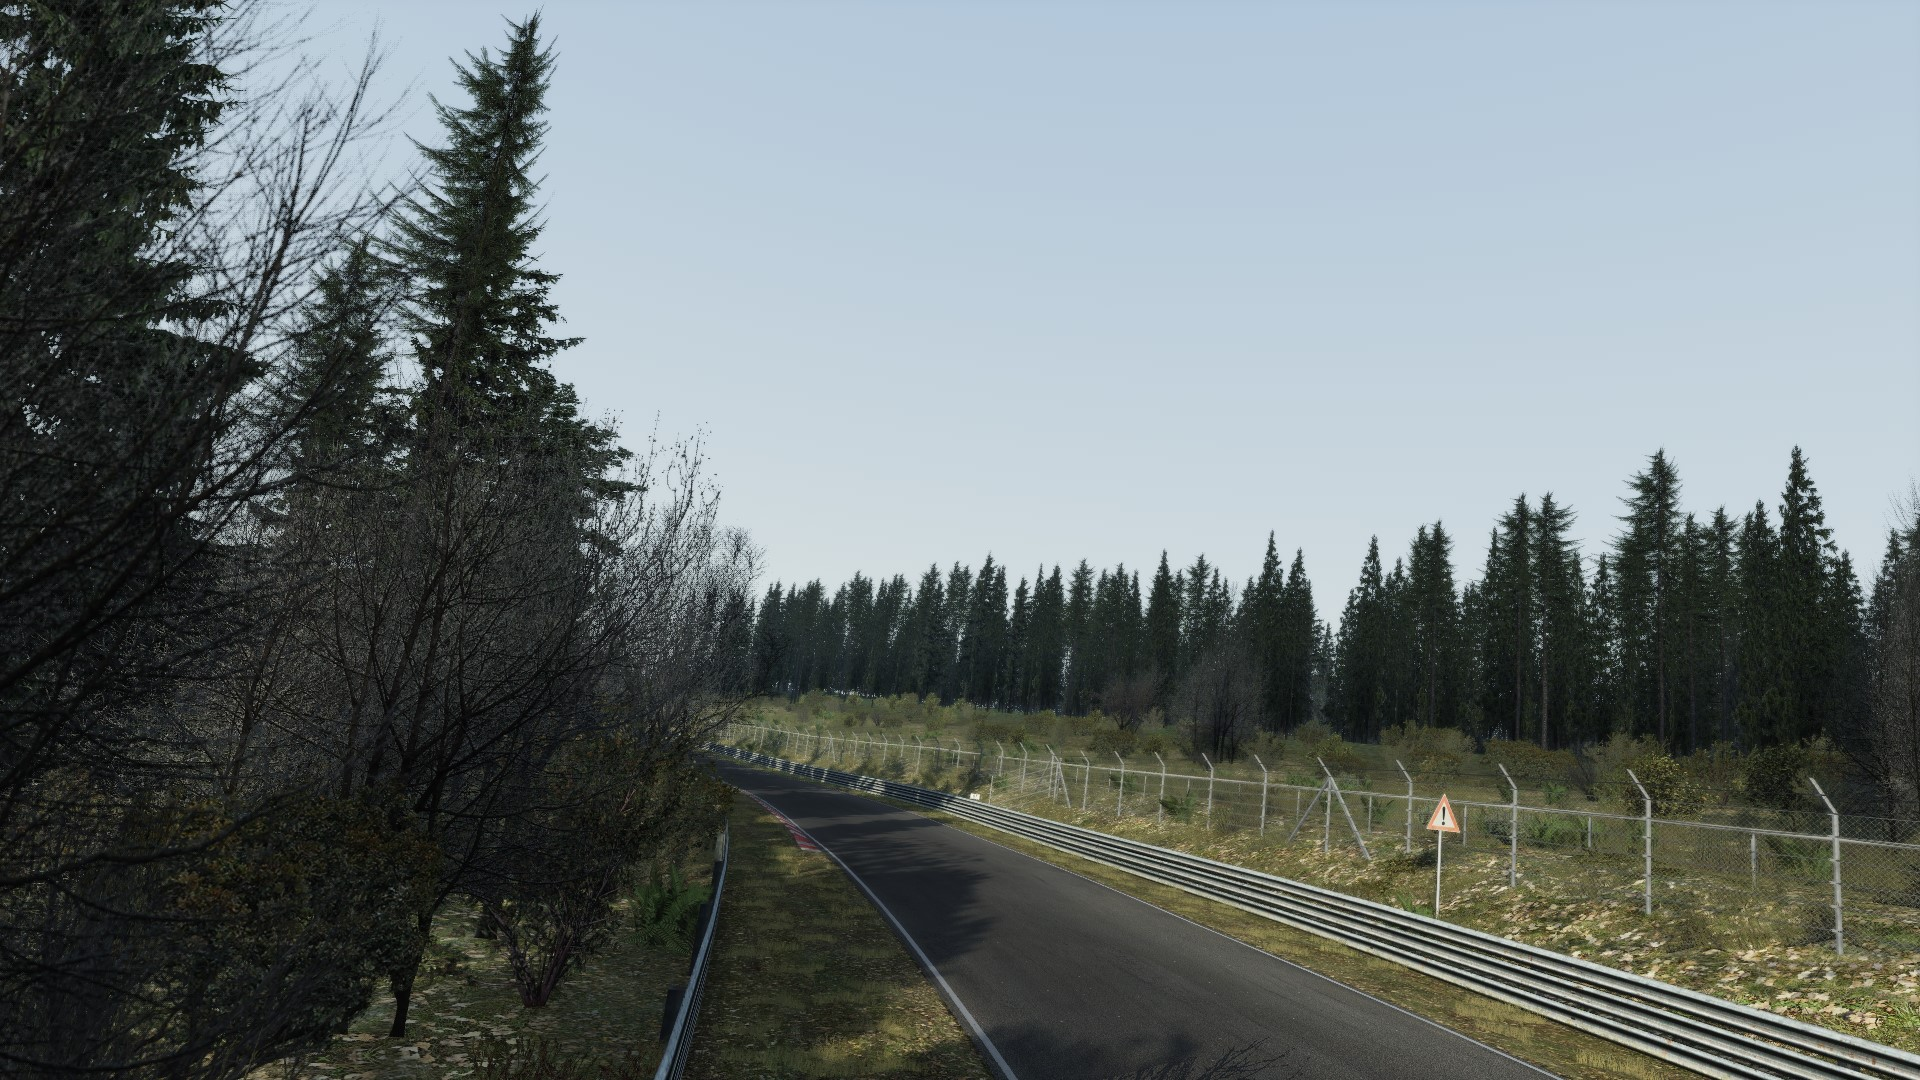 Screenshot_ks_bmw_m235i_racing_ks_nordschleife_10-1-118-4-44-10.jpg